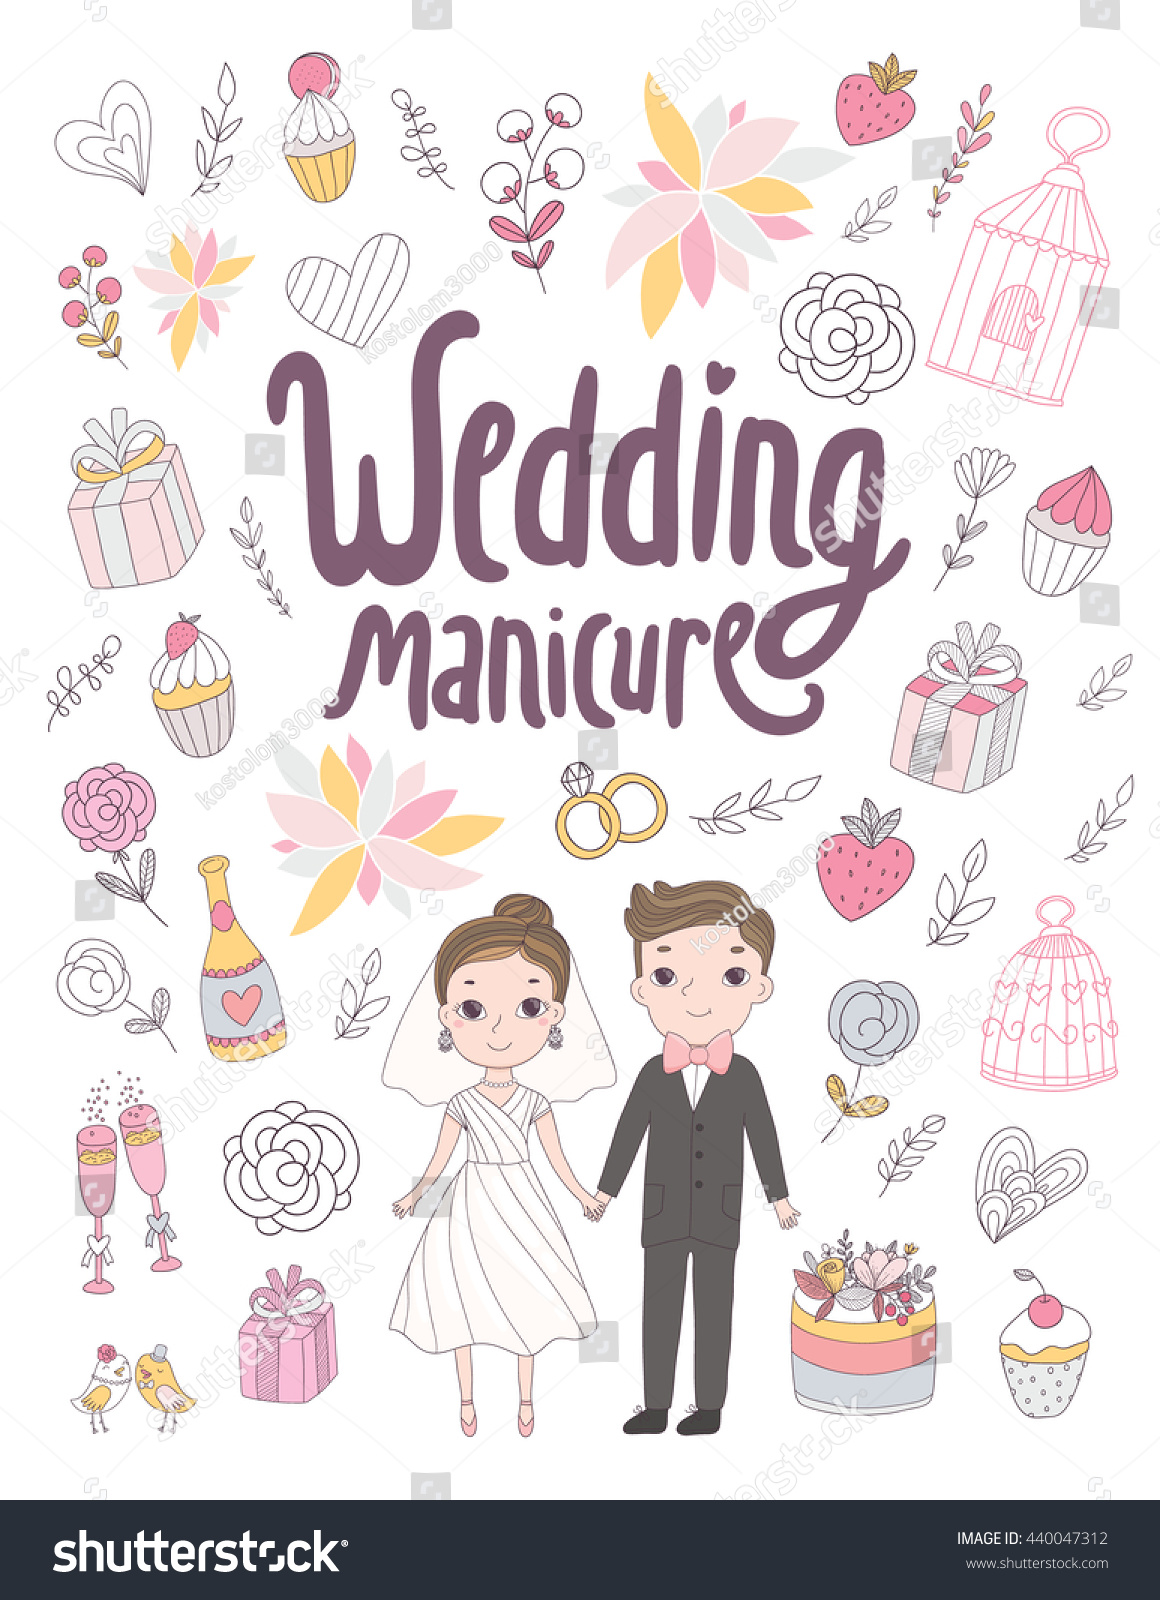 Wedding Manicure Poster Nail Salon Cute Stock Vector (Royalty Free ...